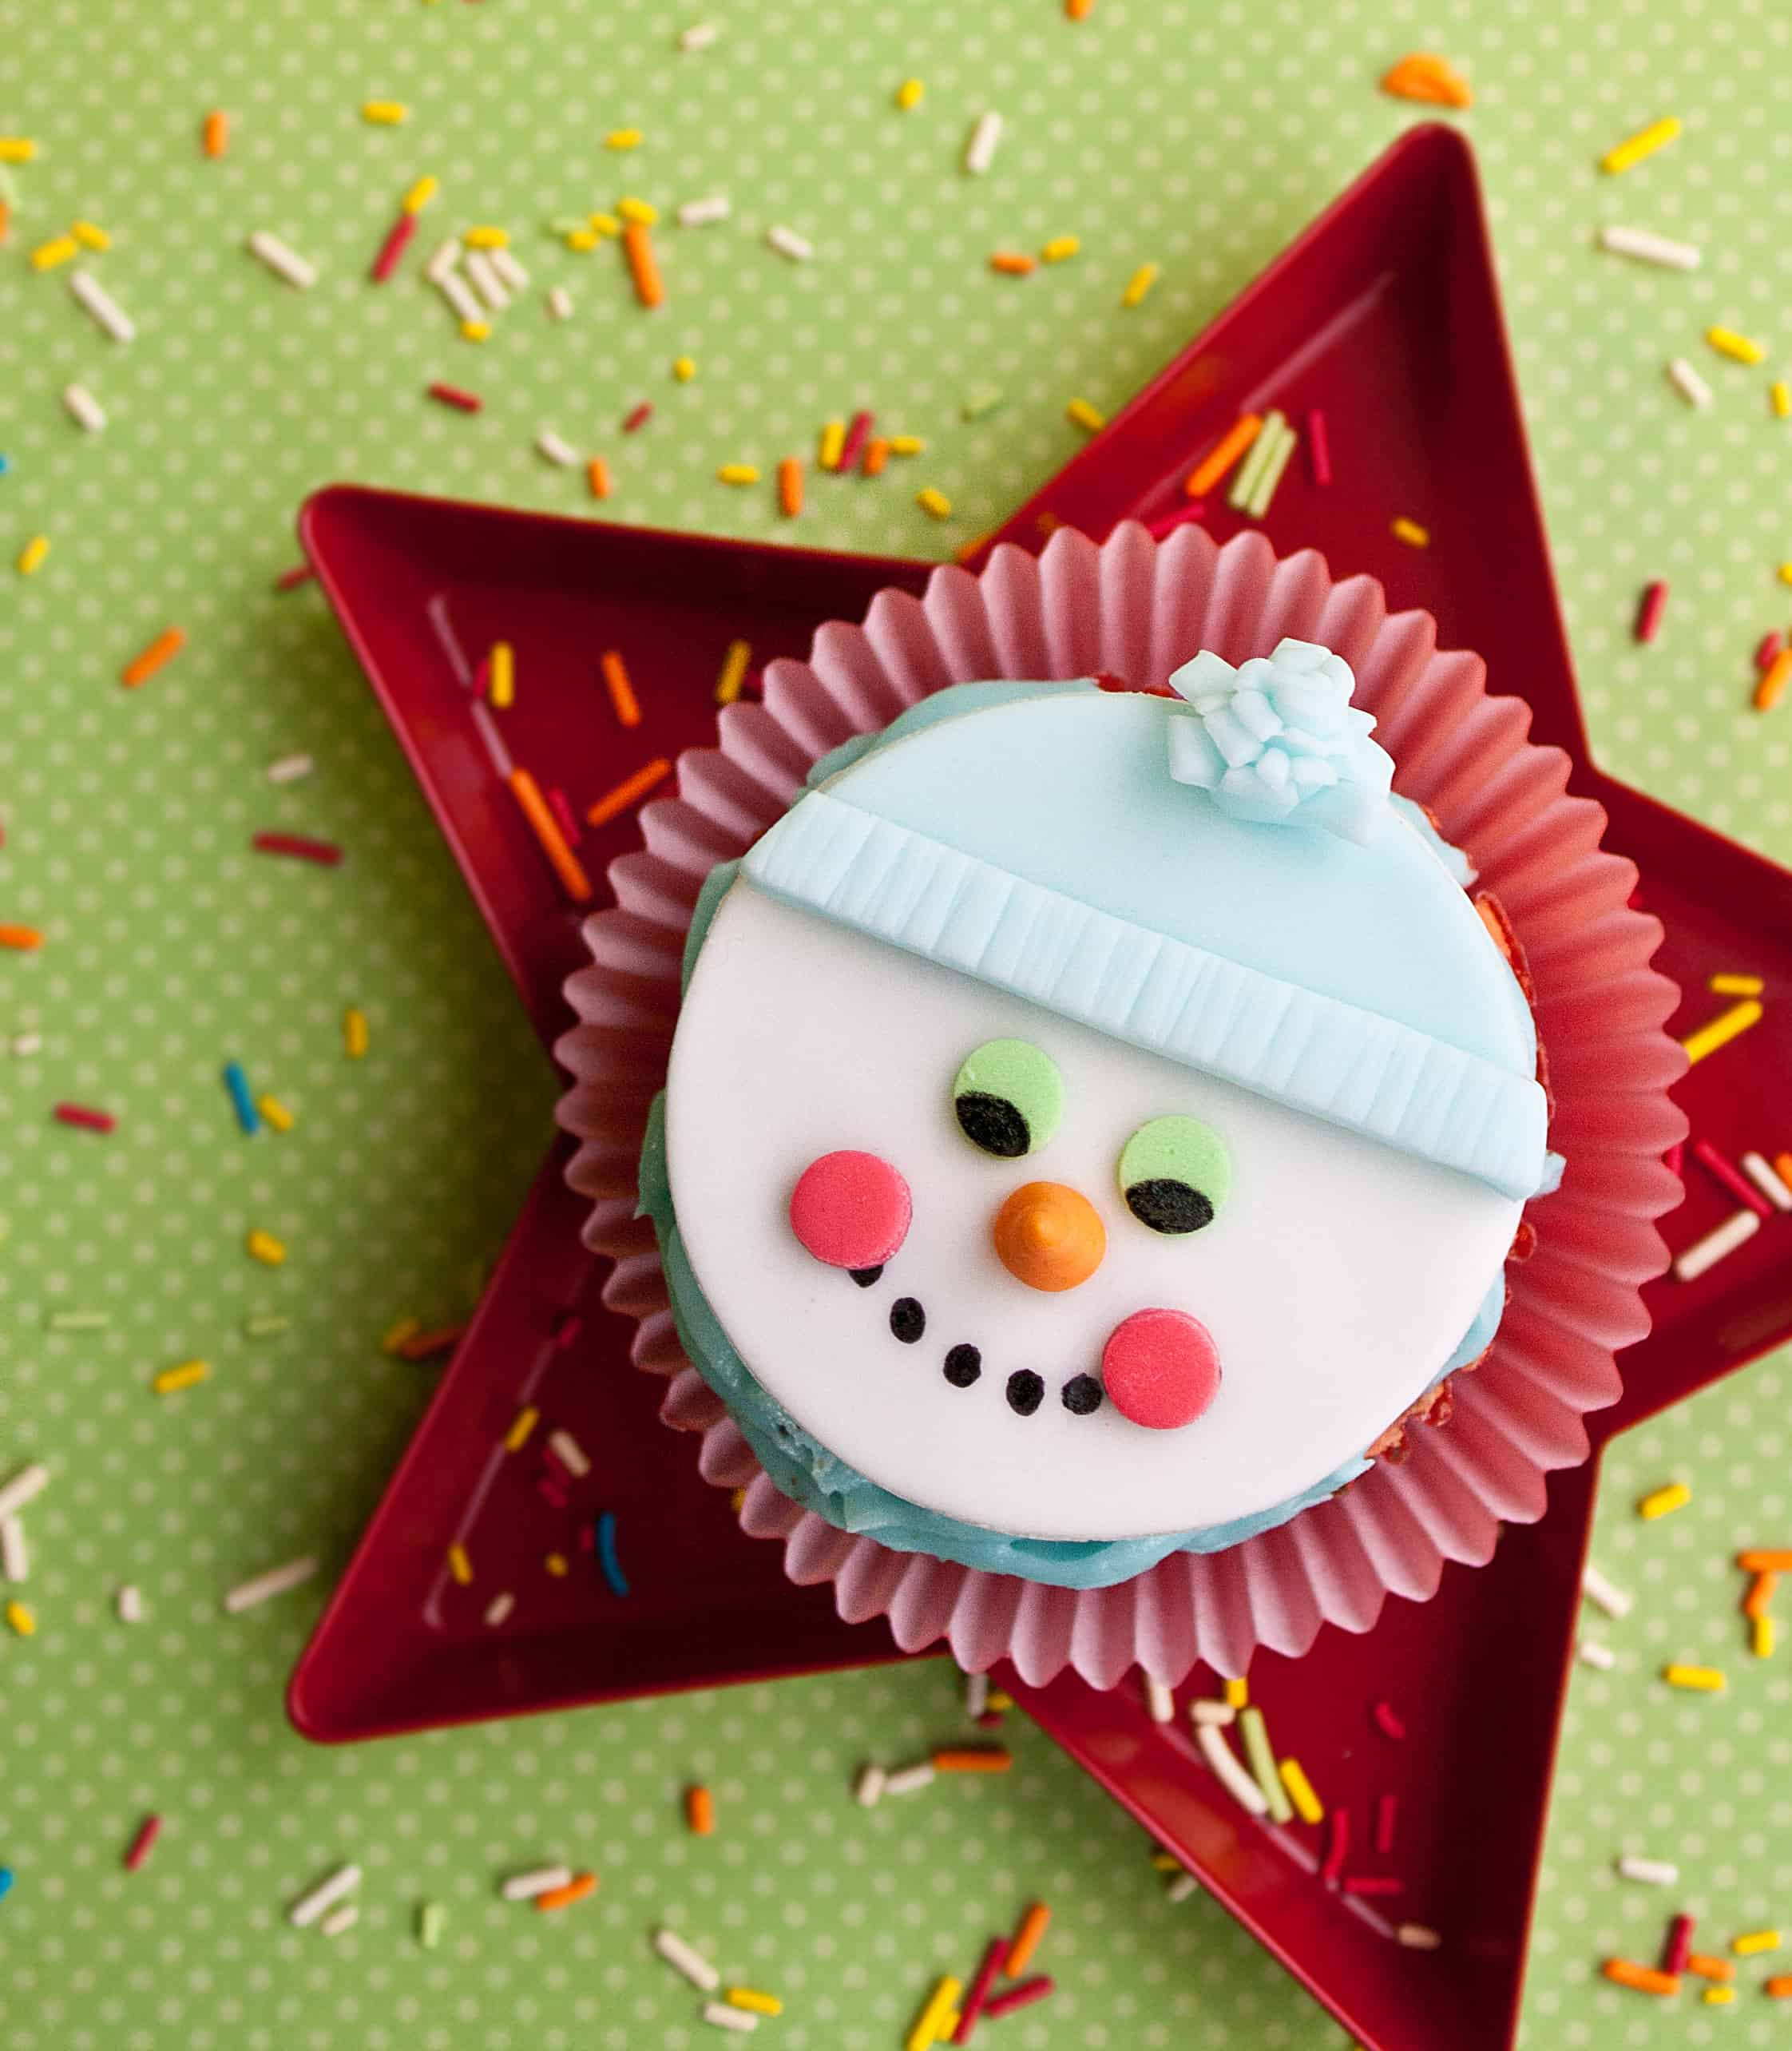 Video: How to make snowman cupcake toppers